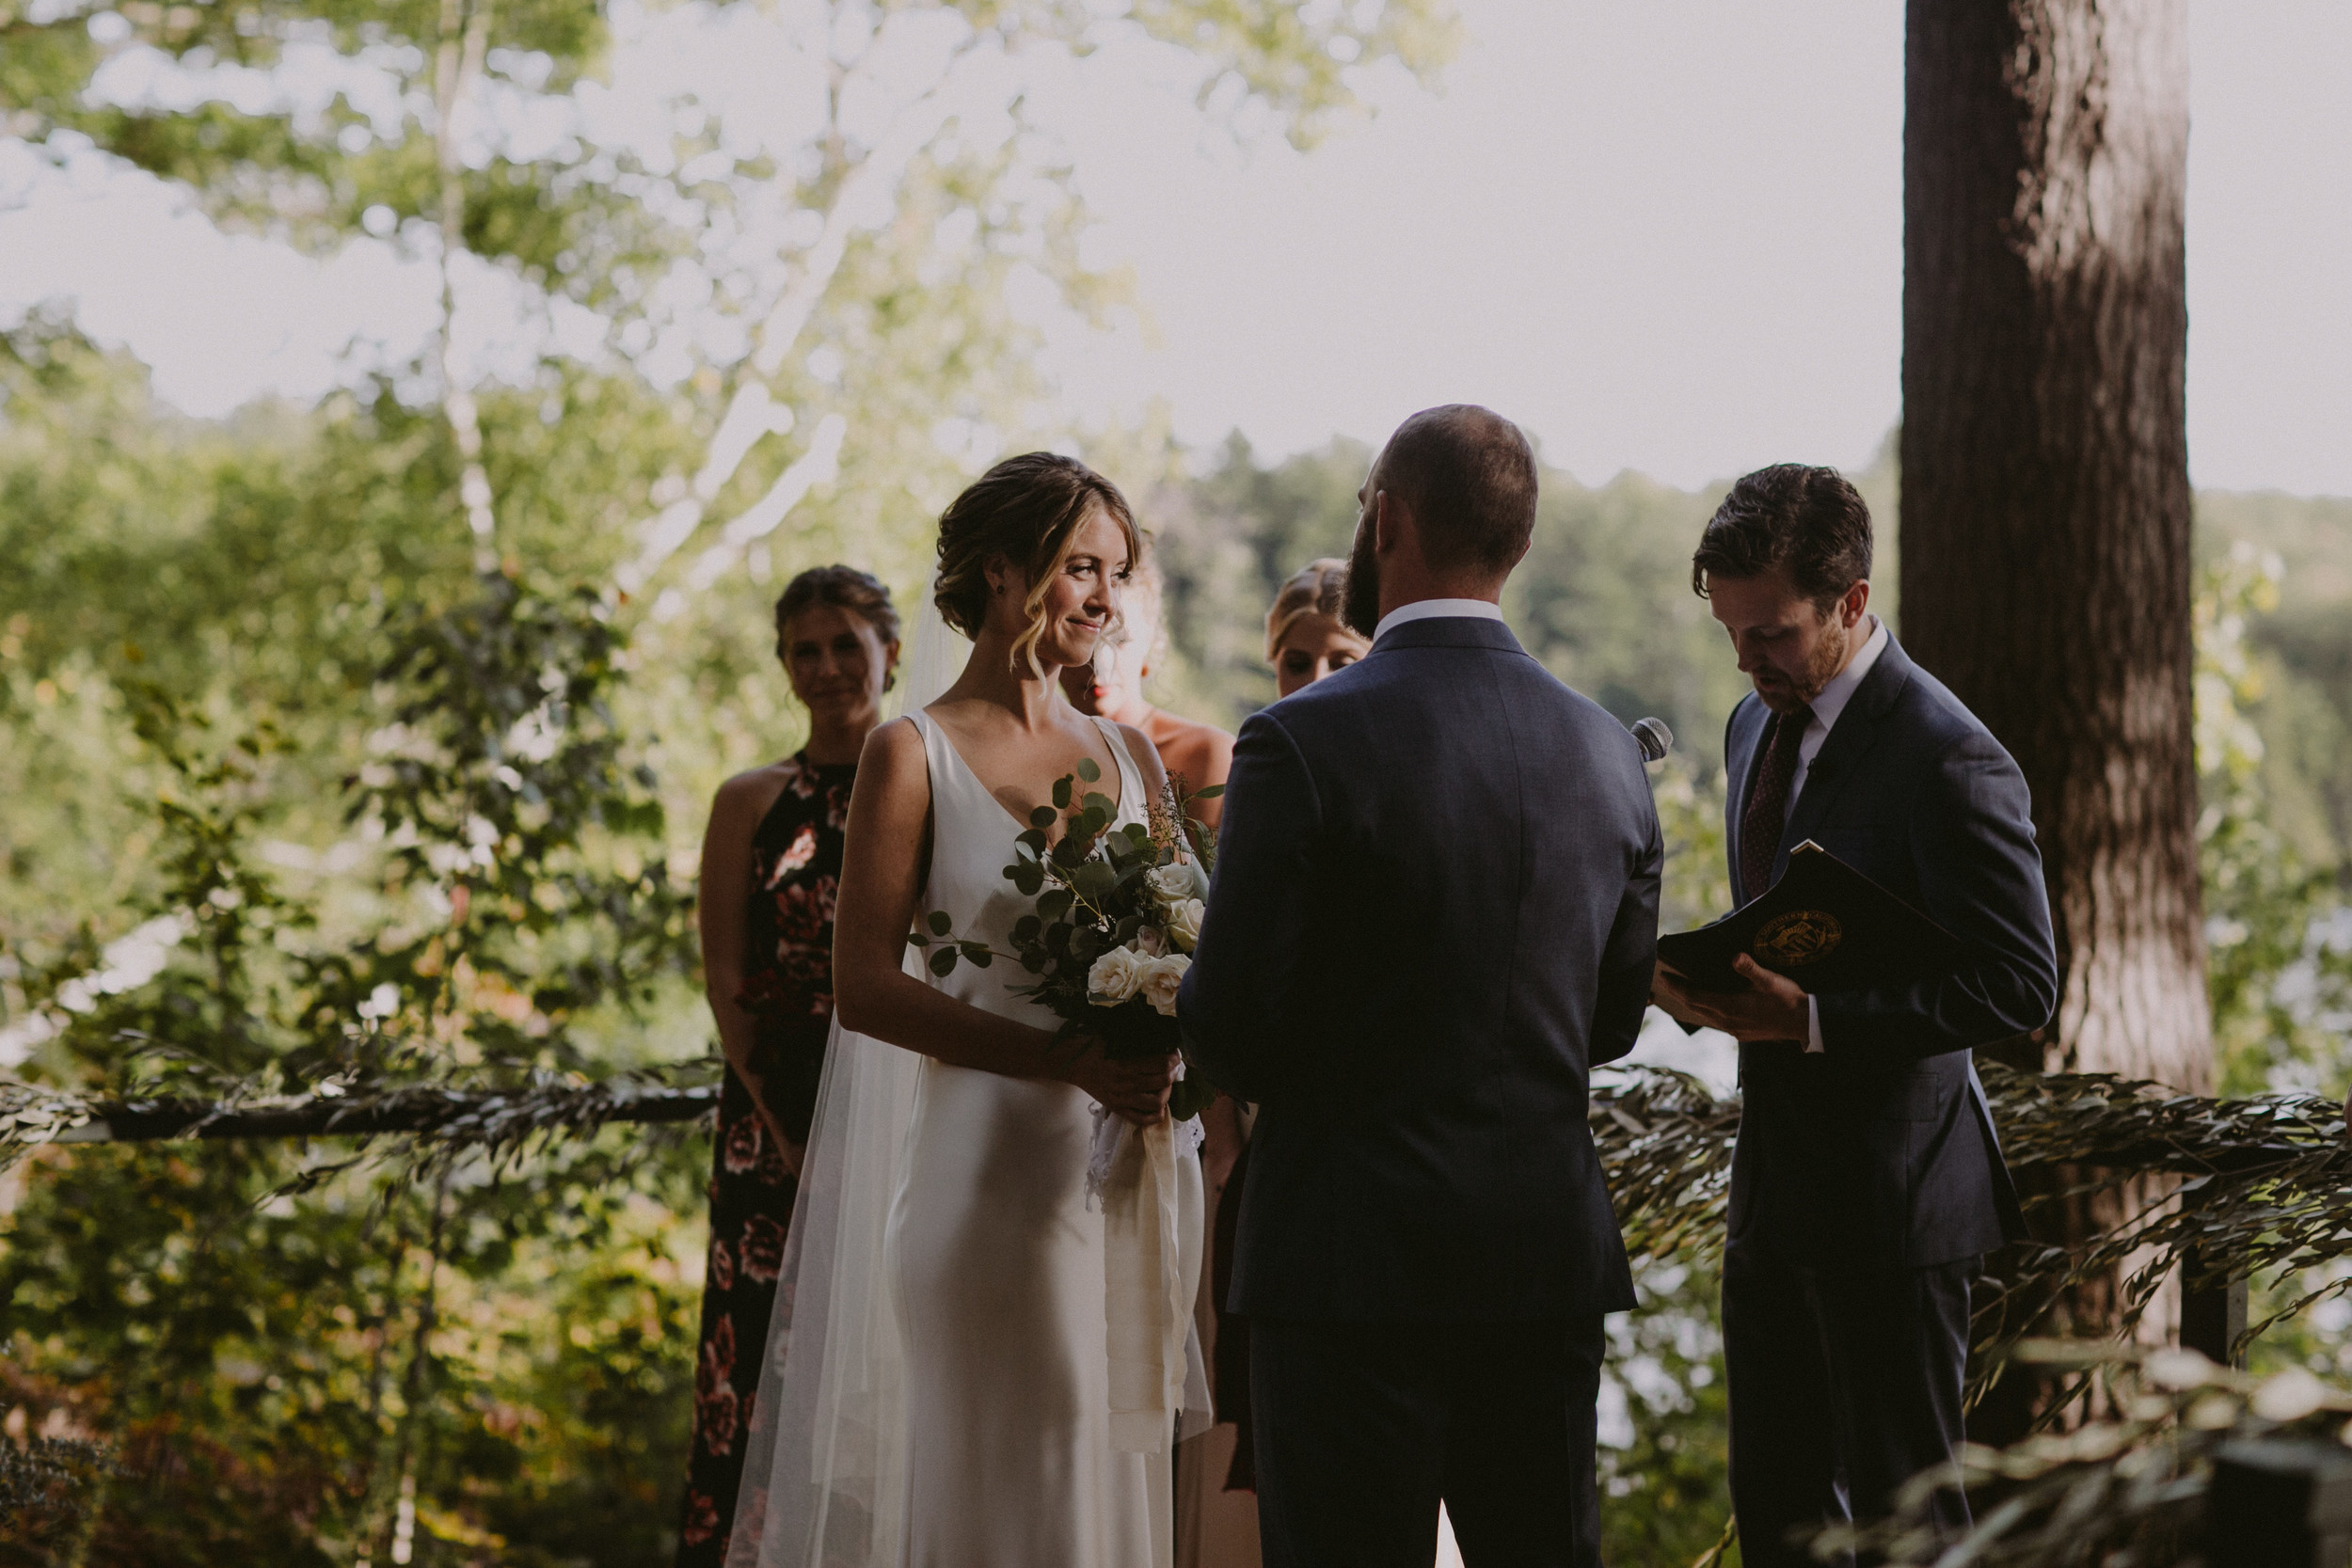 windsor mountain summer camp wedding NH chellise michael photography 1779.jpg